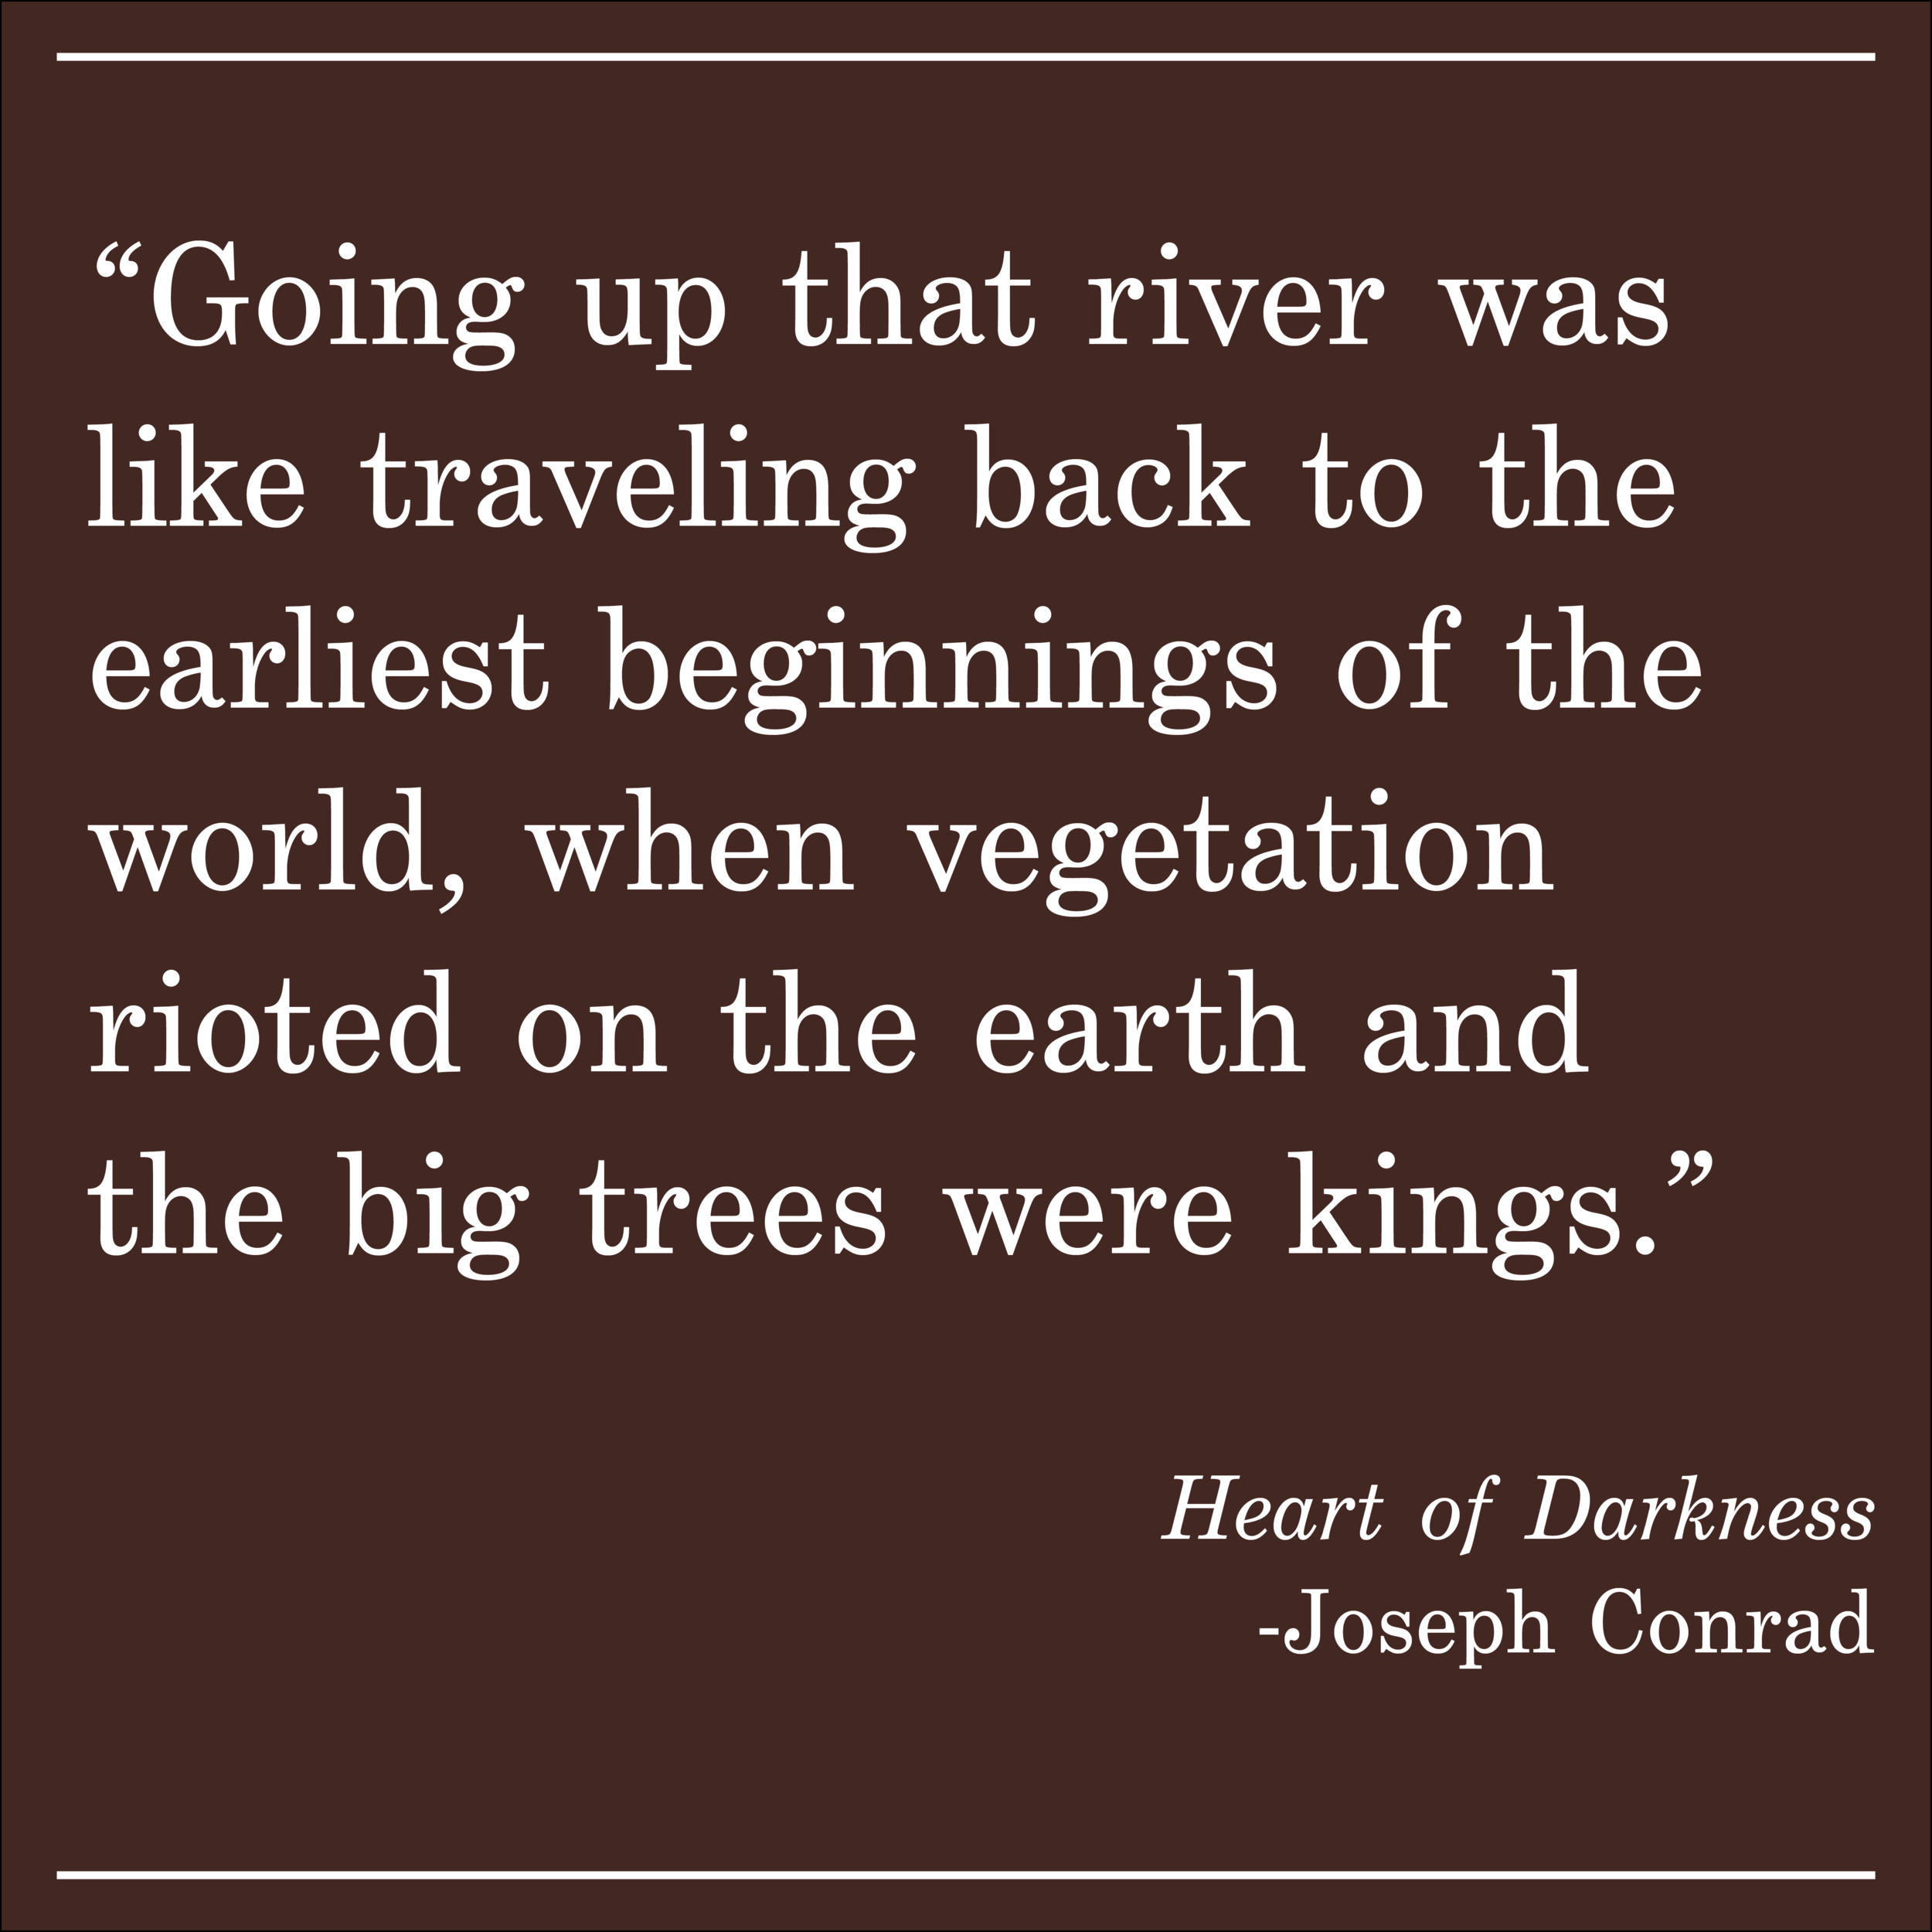 Daily Quote Heart of Darkness by Joseph Conrad